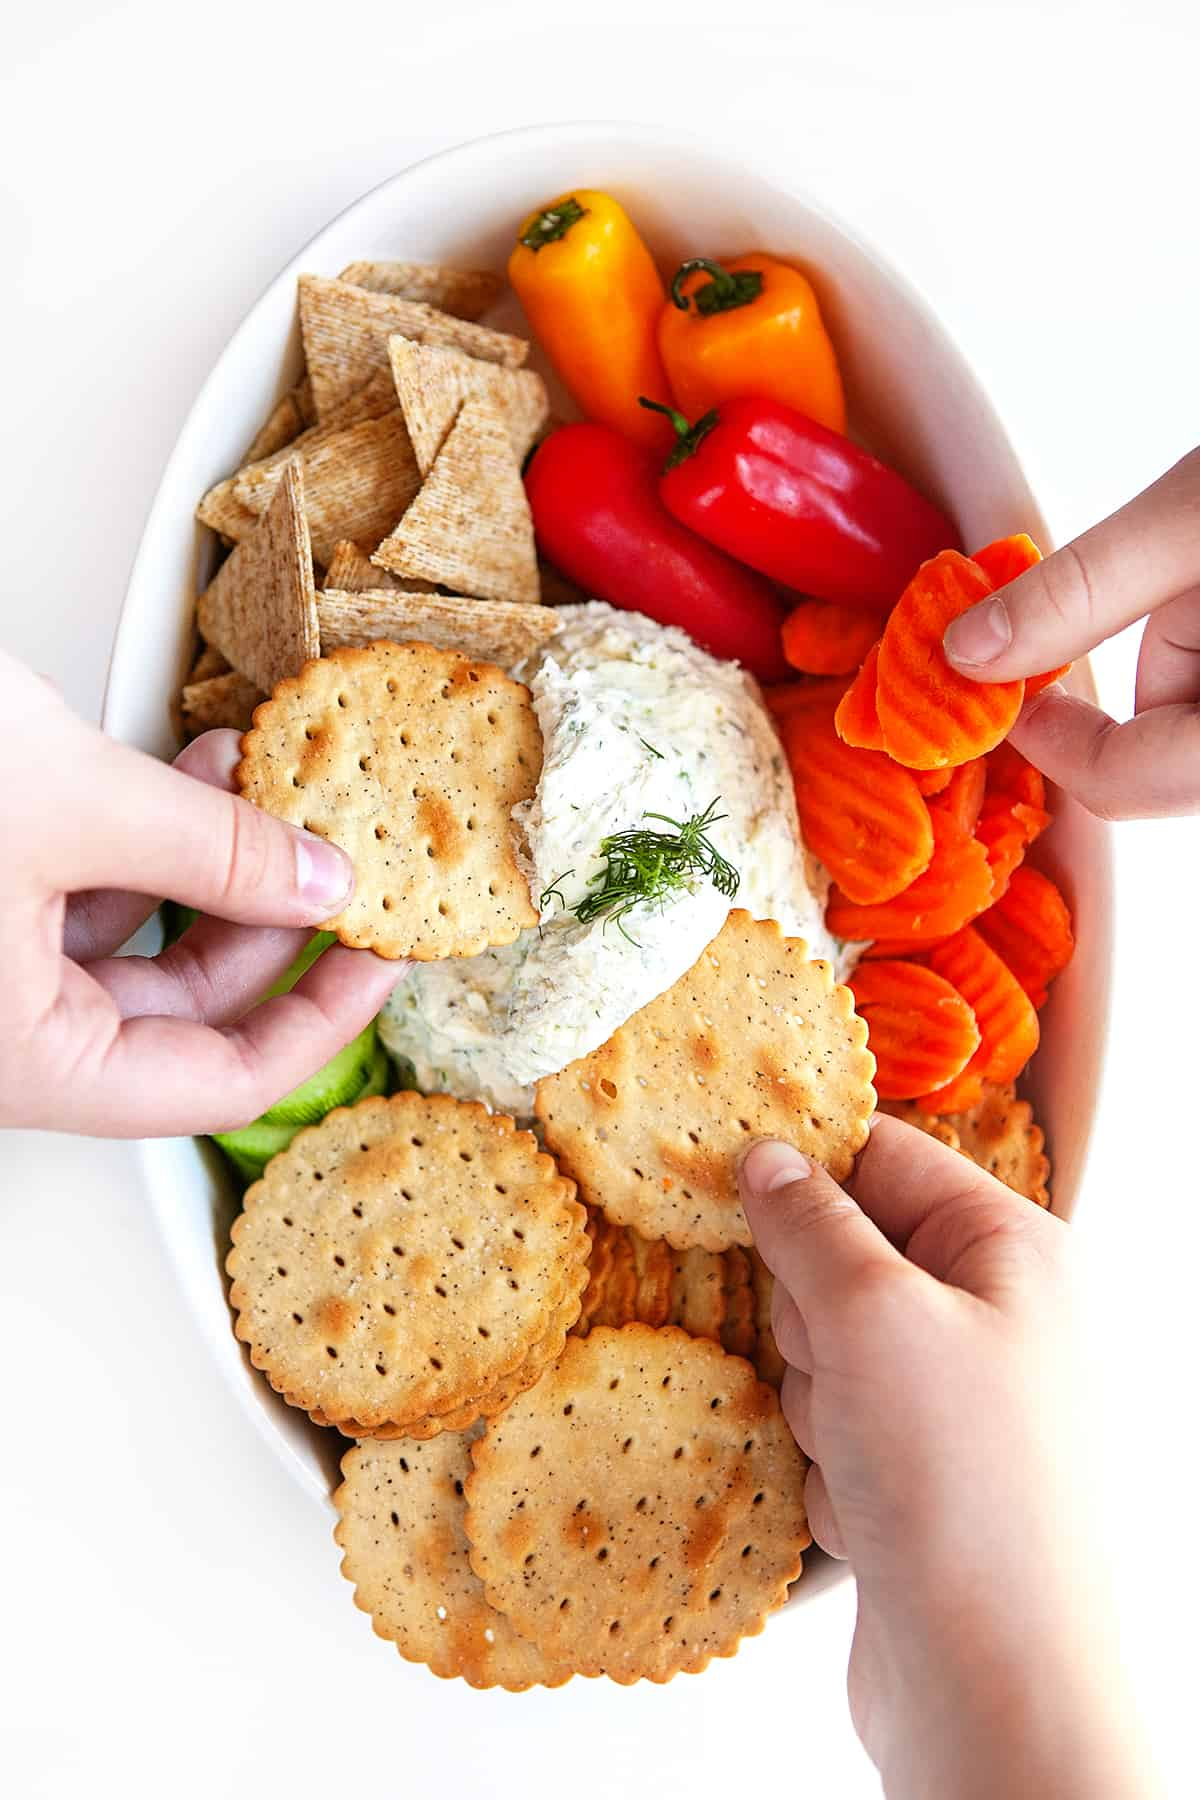 Everyone diving into a Boursin Cheese Recipe with crackers and veggies